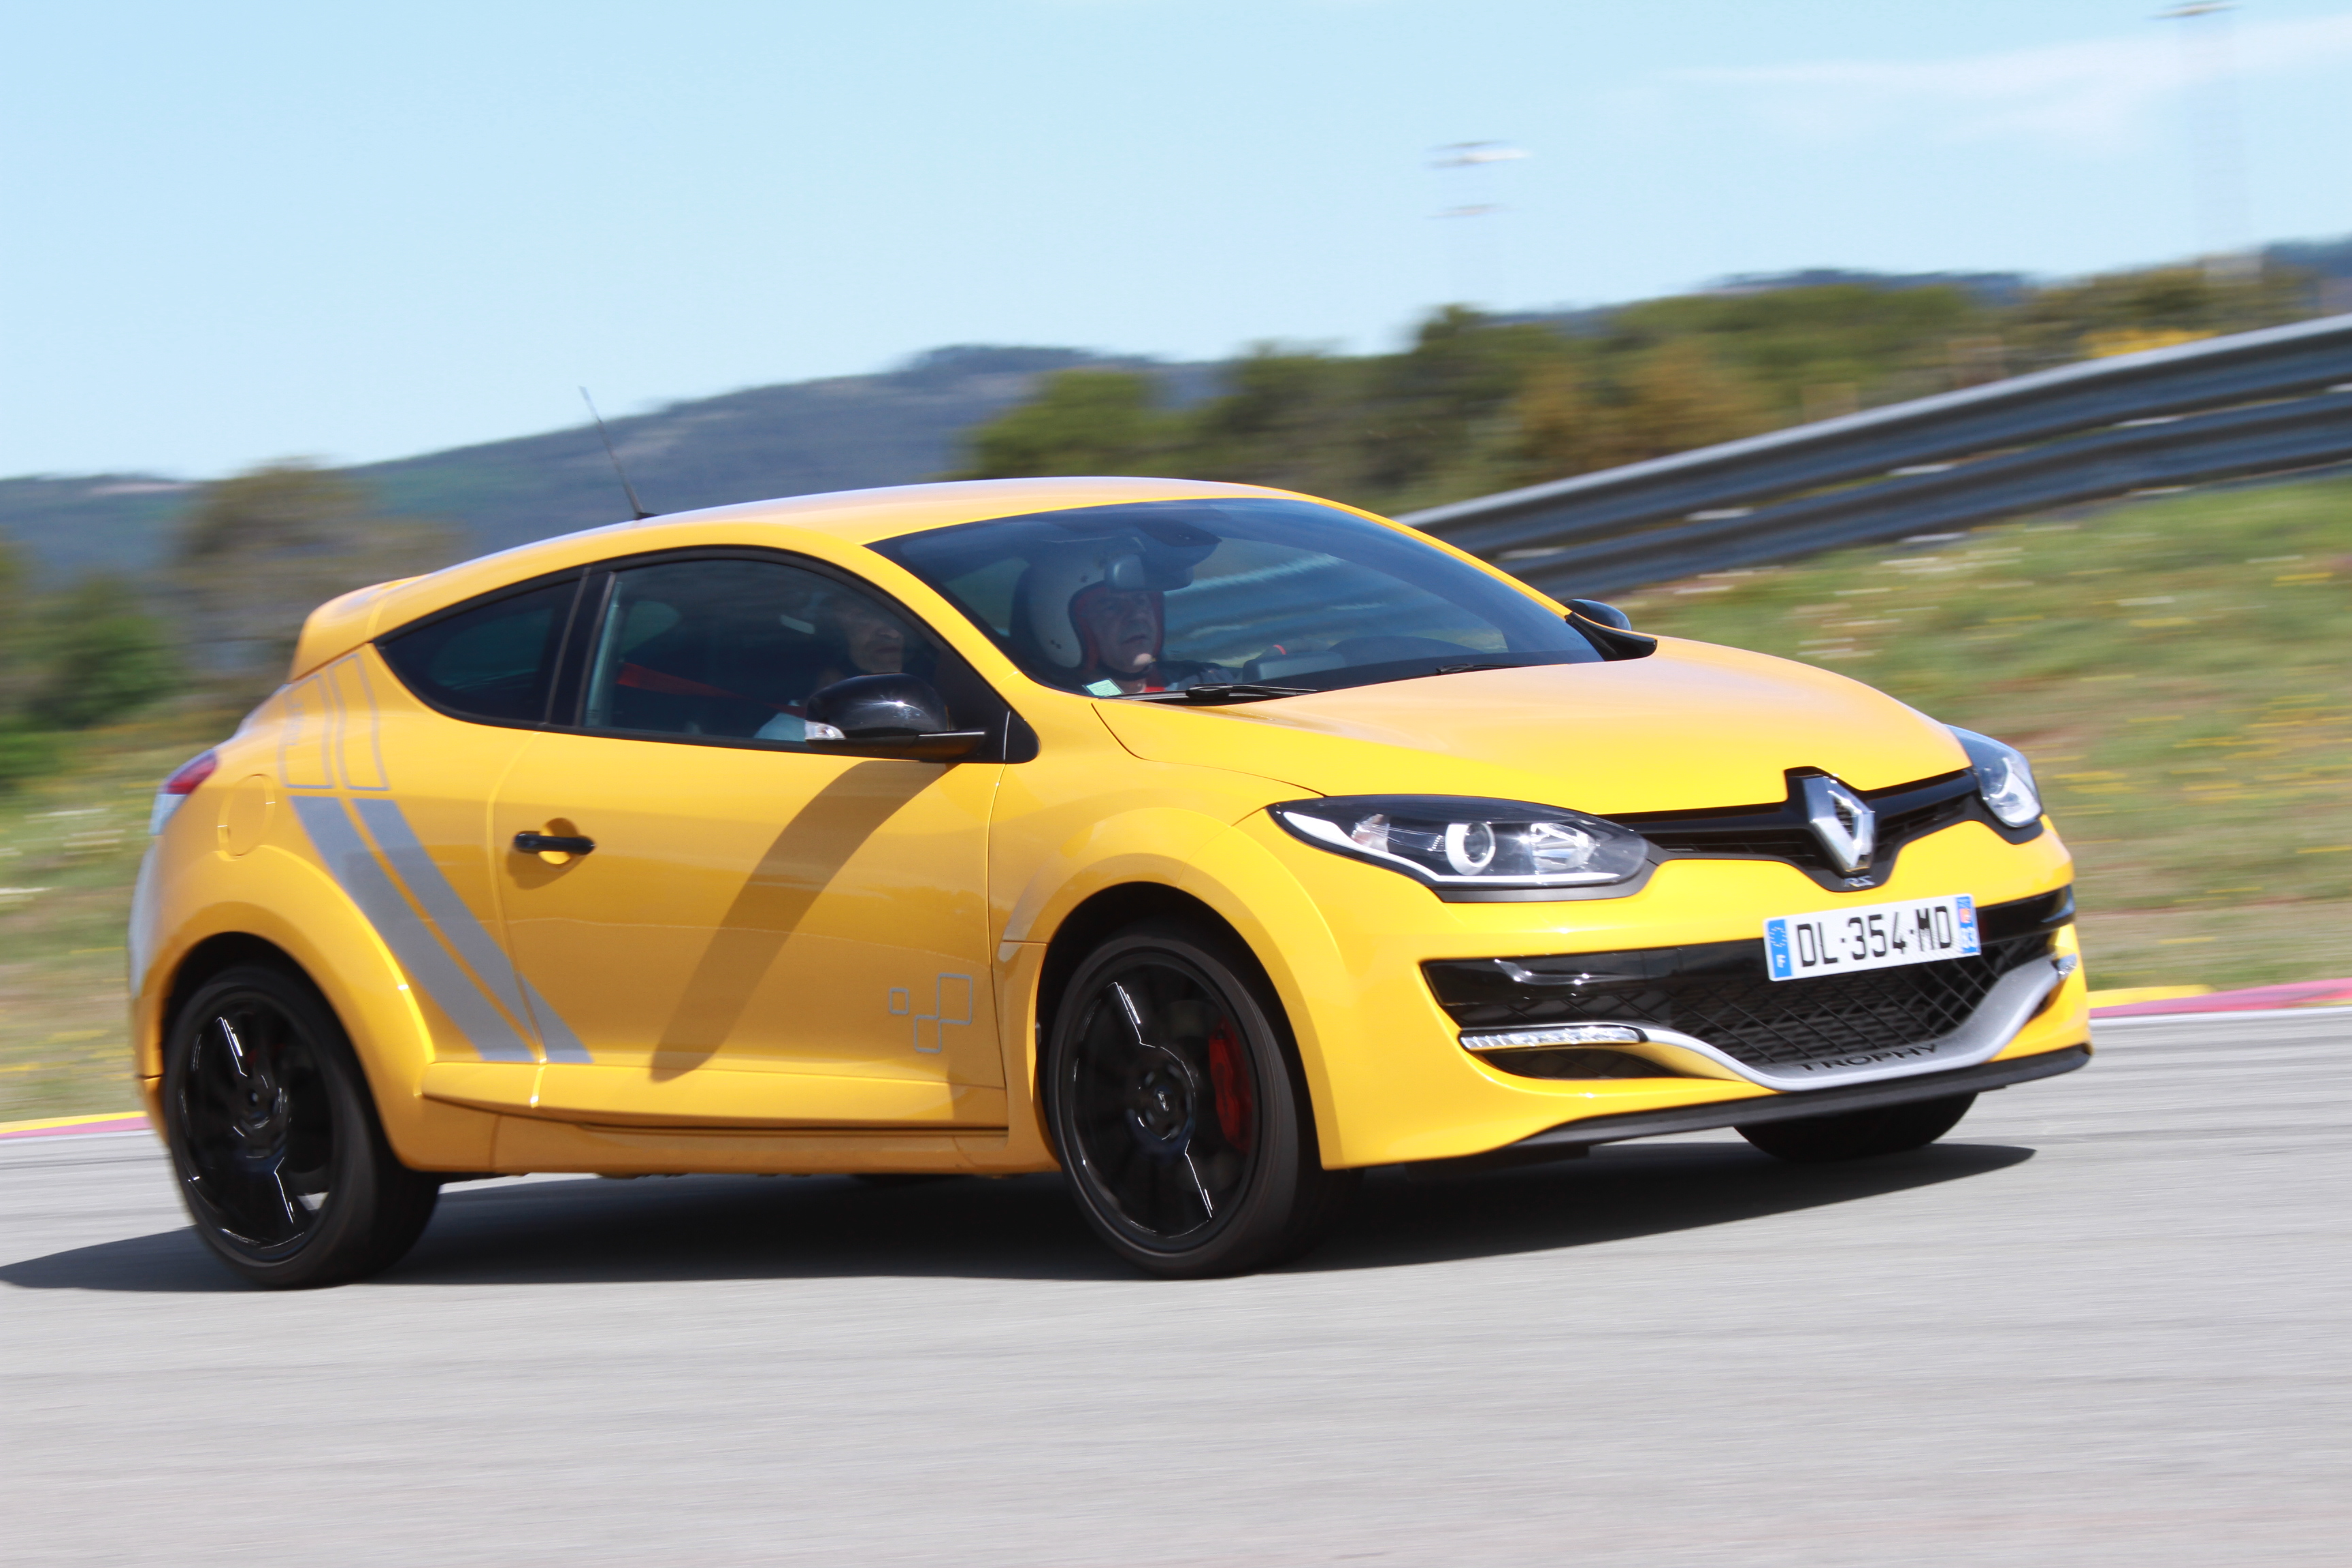 Renault Megane 3 Rs Trophy on race car circuits